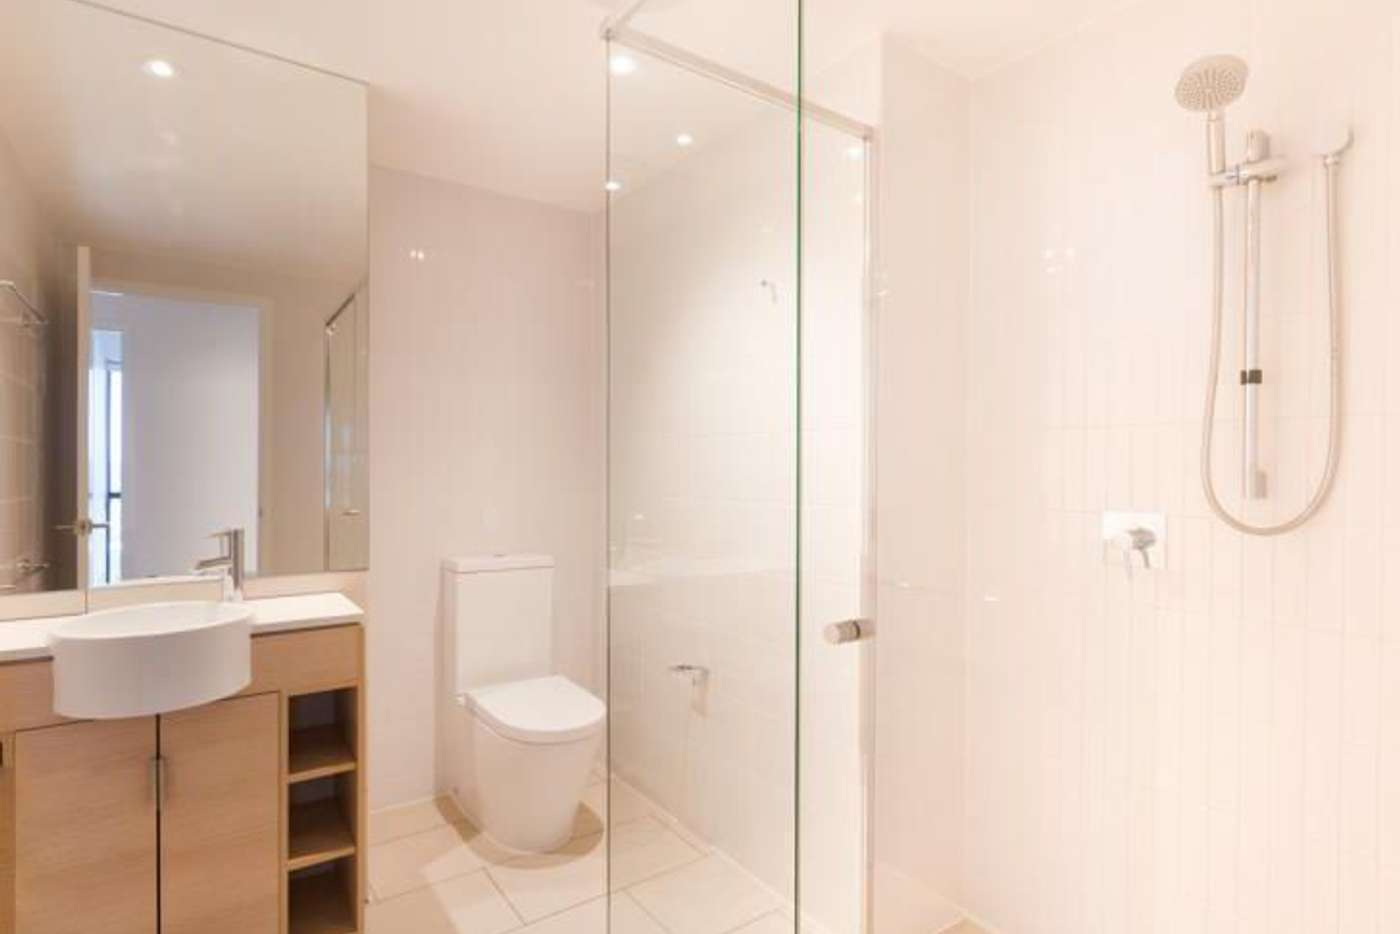 Fifth view of Homely apartment listing, 2201/2663 Gold Coast Highway, Broadbeach QLD 4218